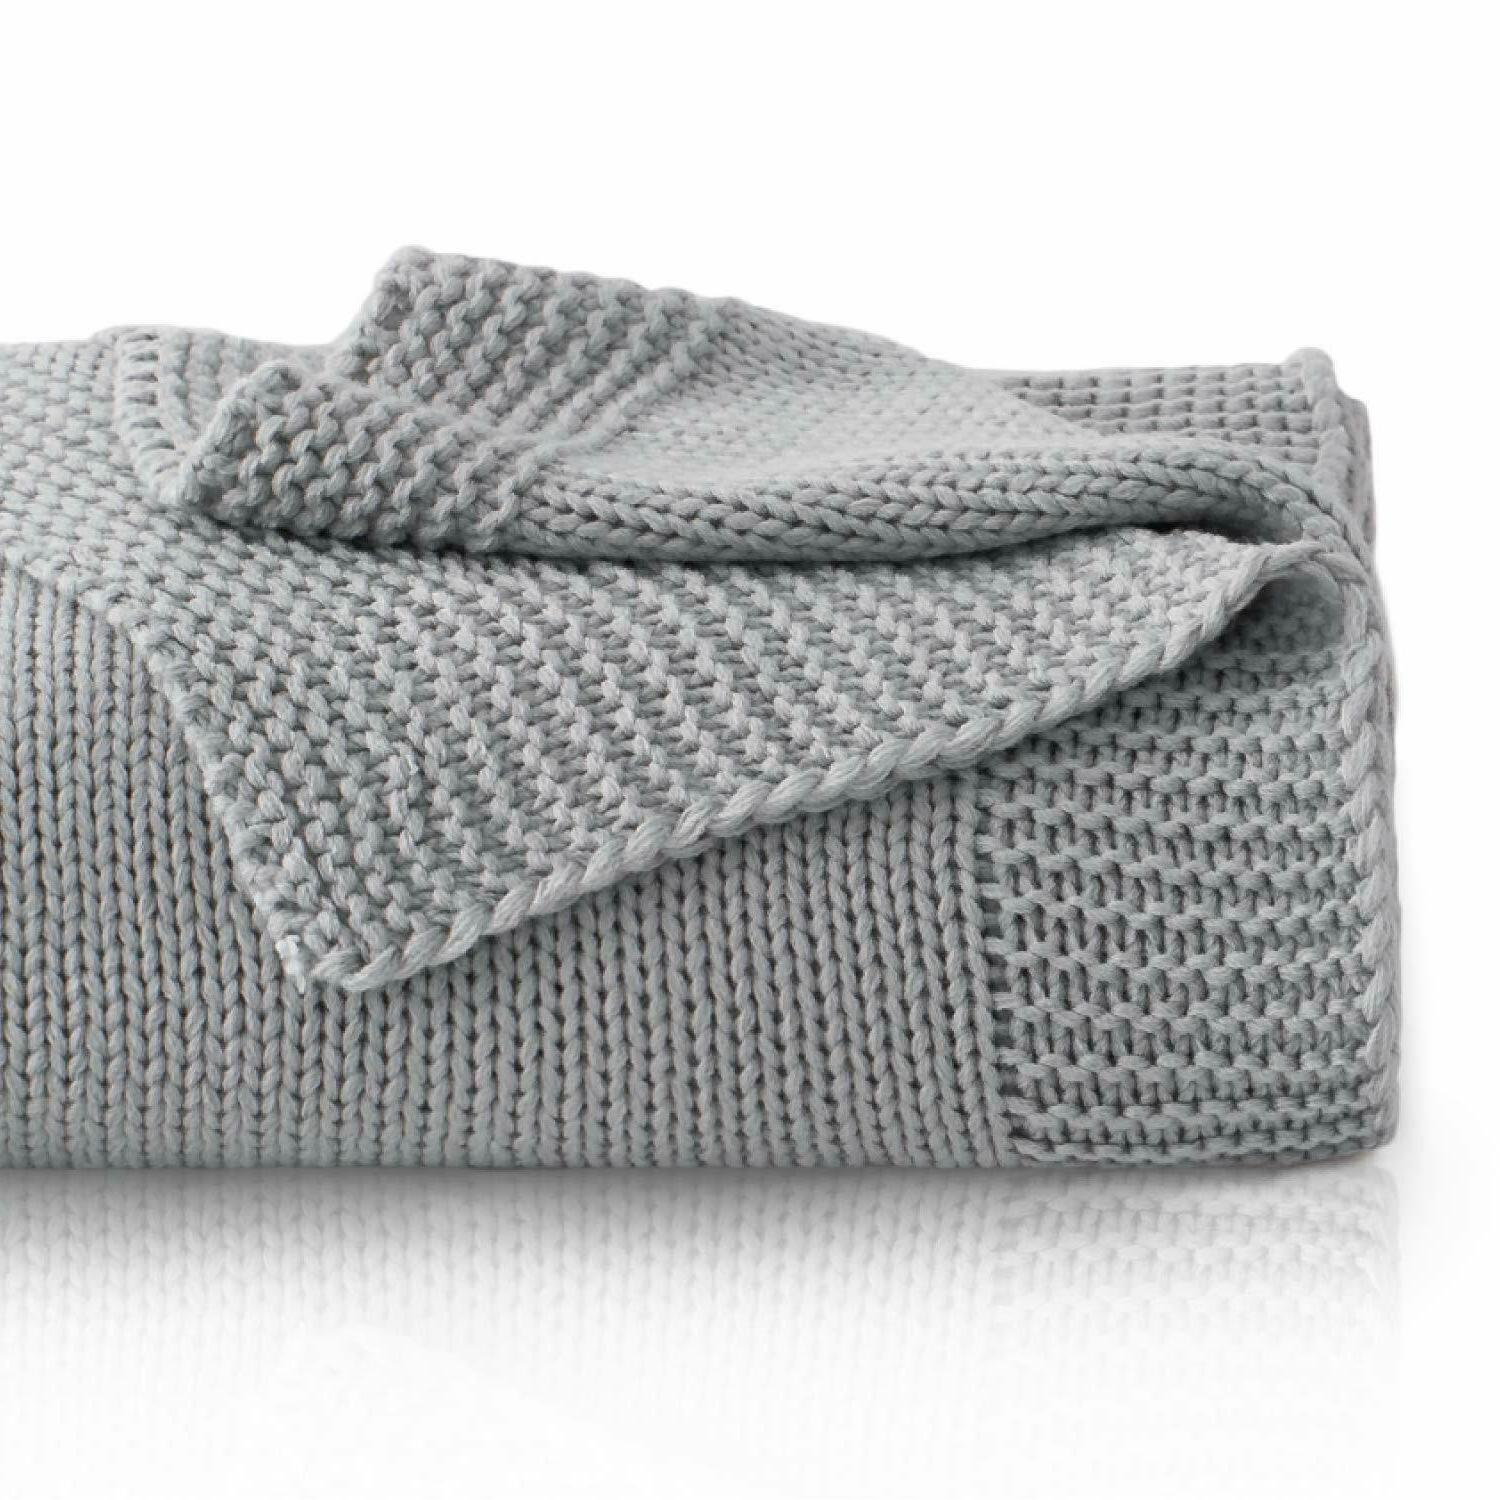 knitted throw blanket for sofa and couch